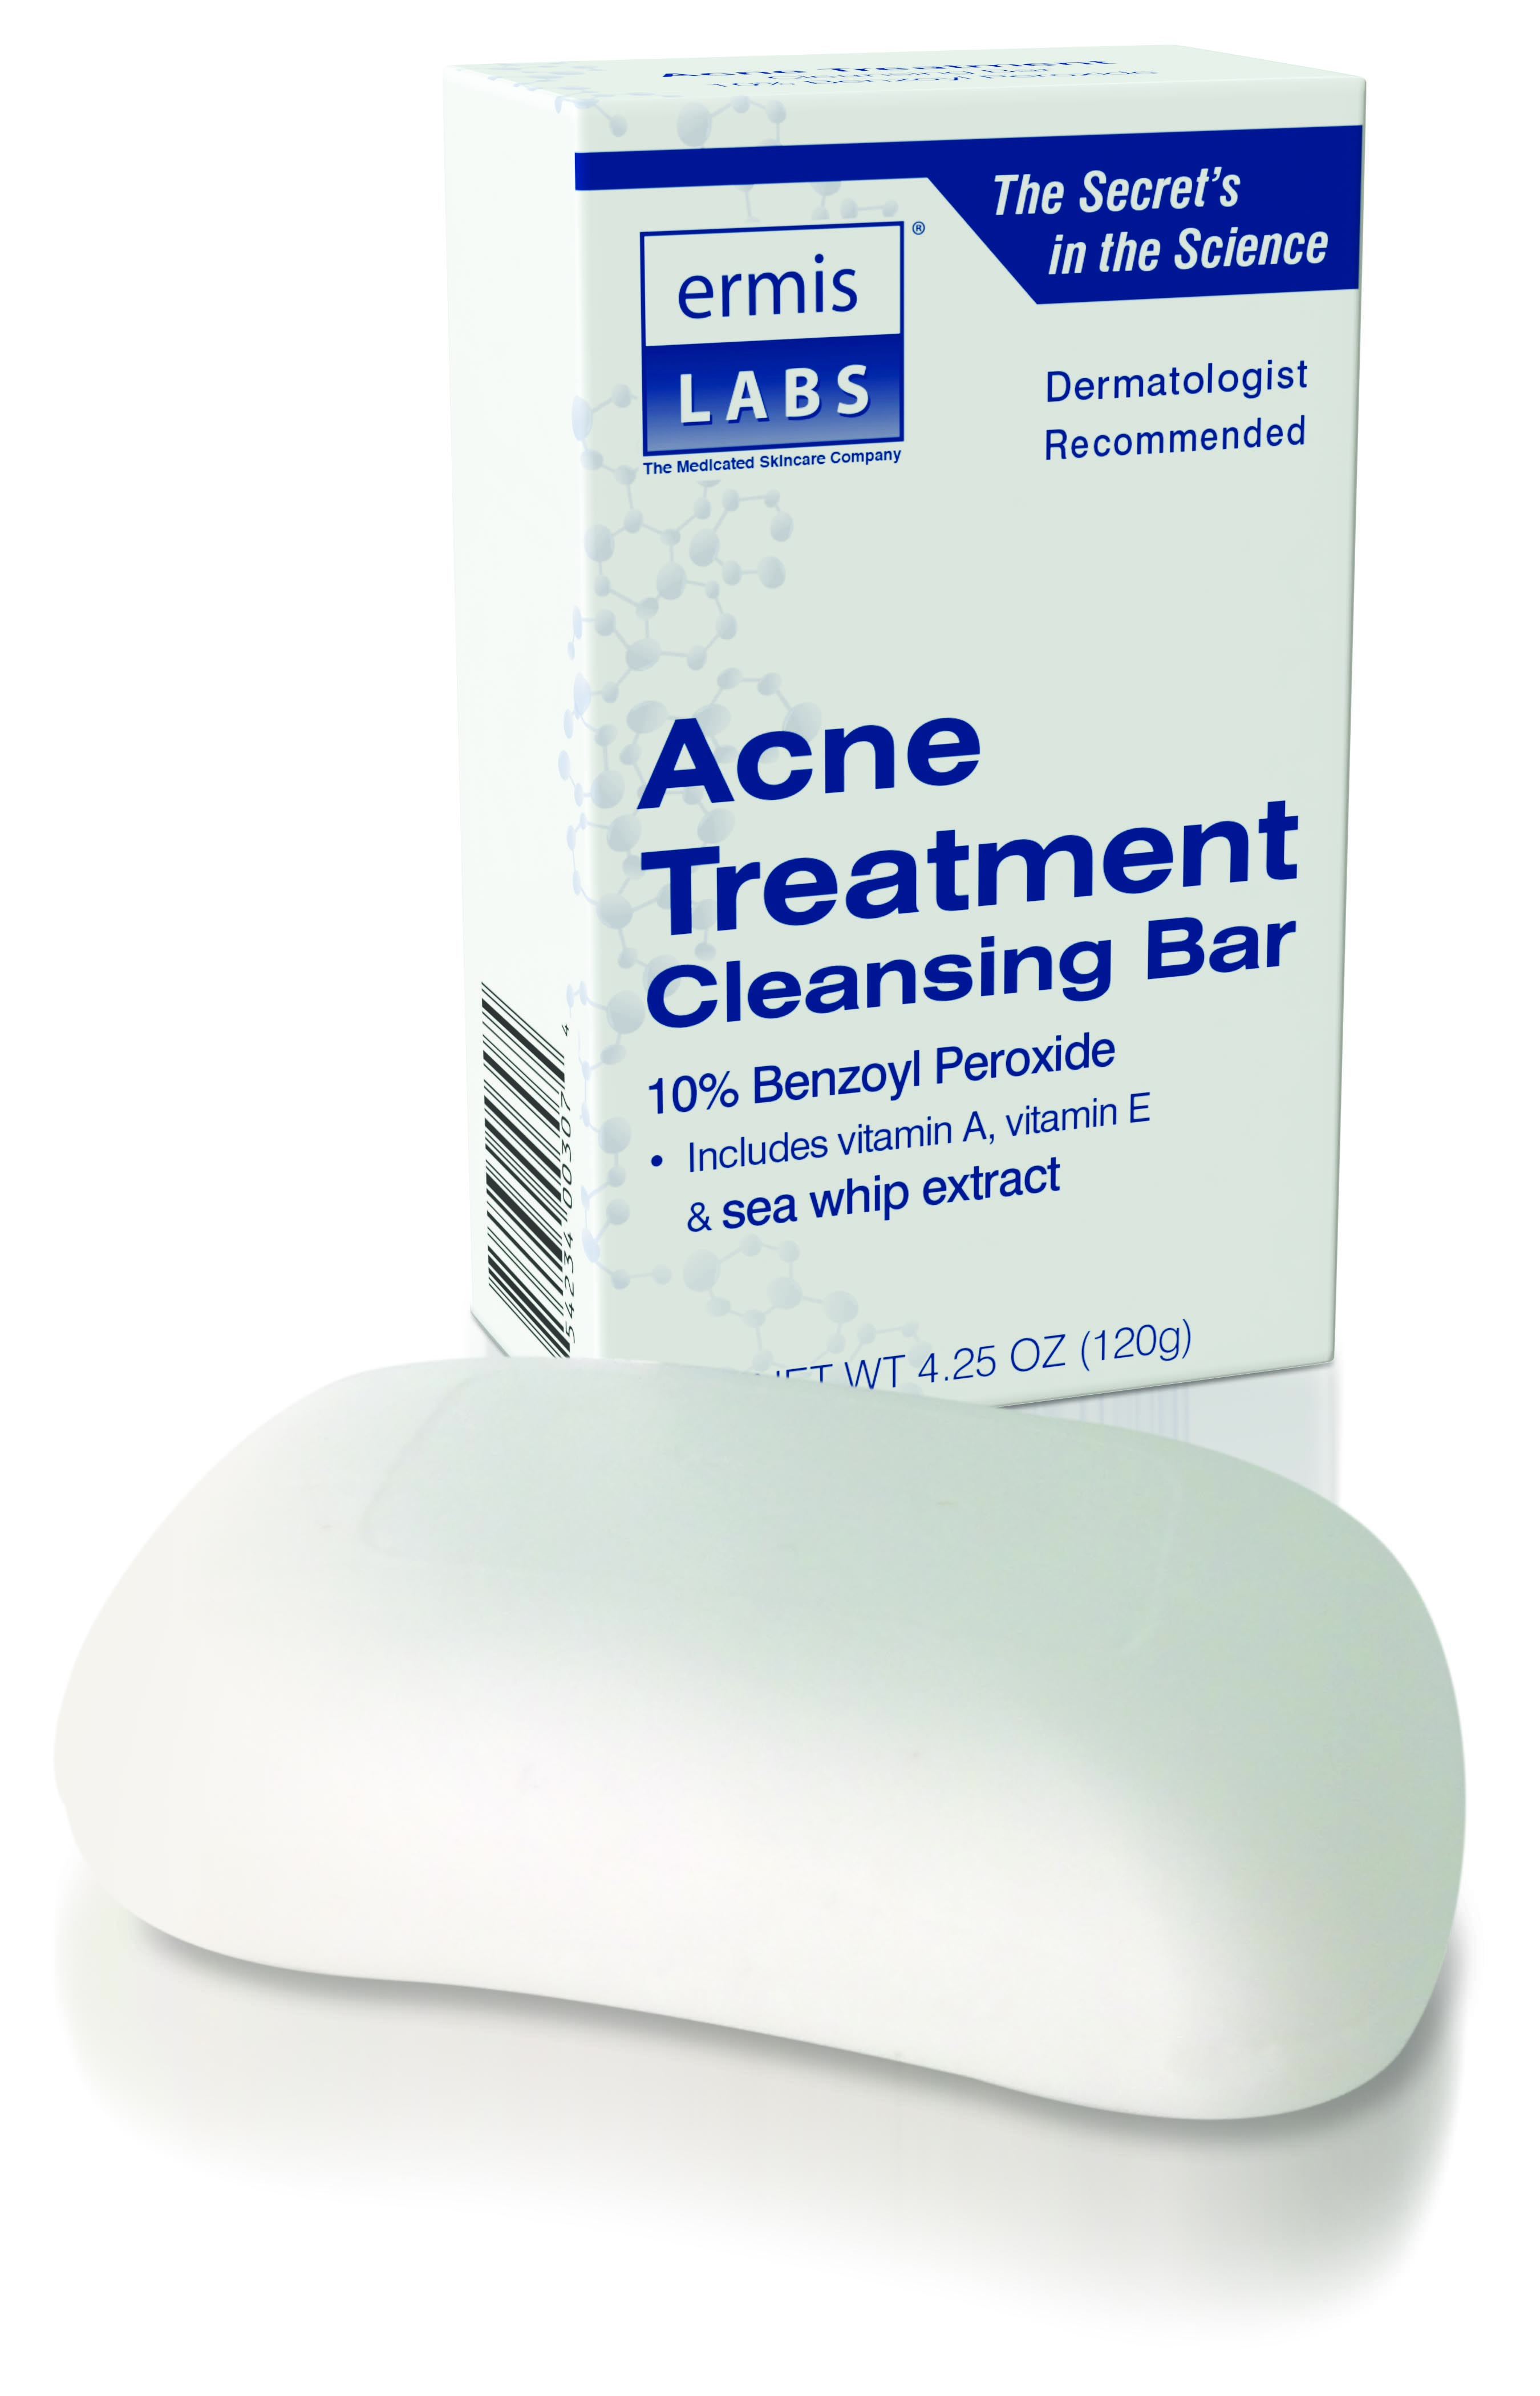 Acne Treatment Skin Care